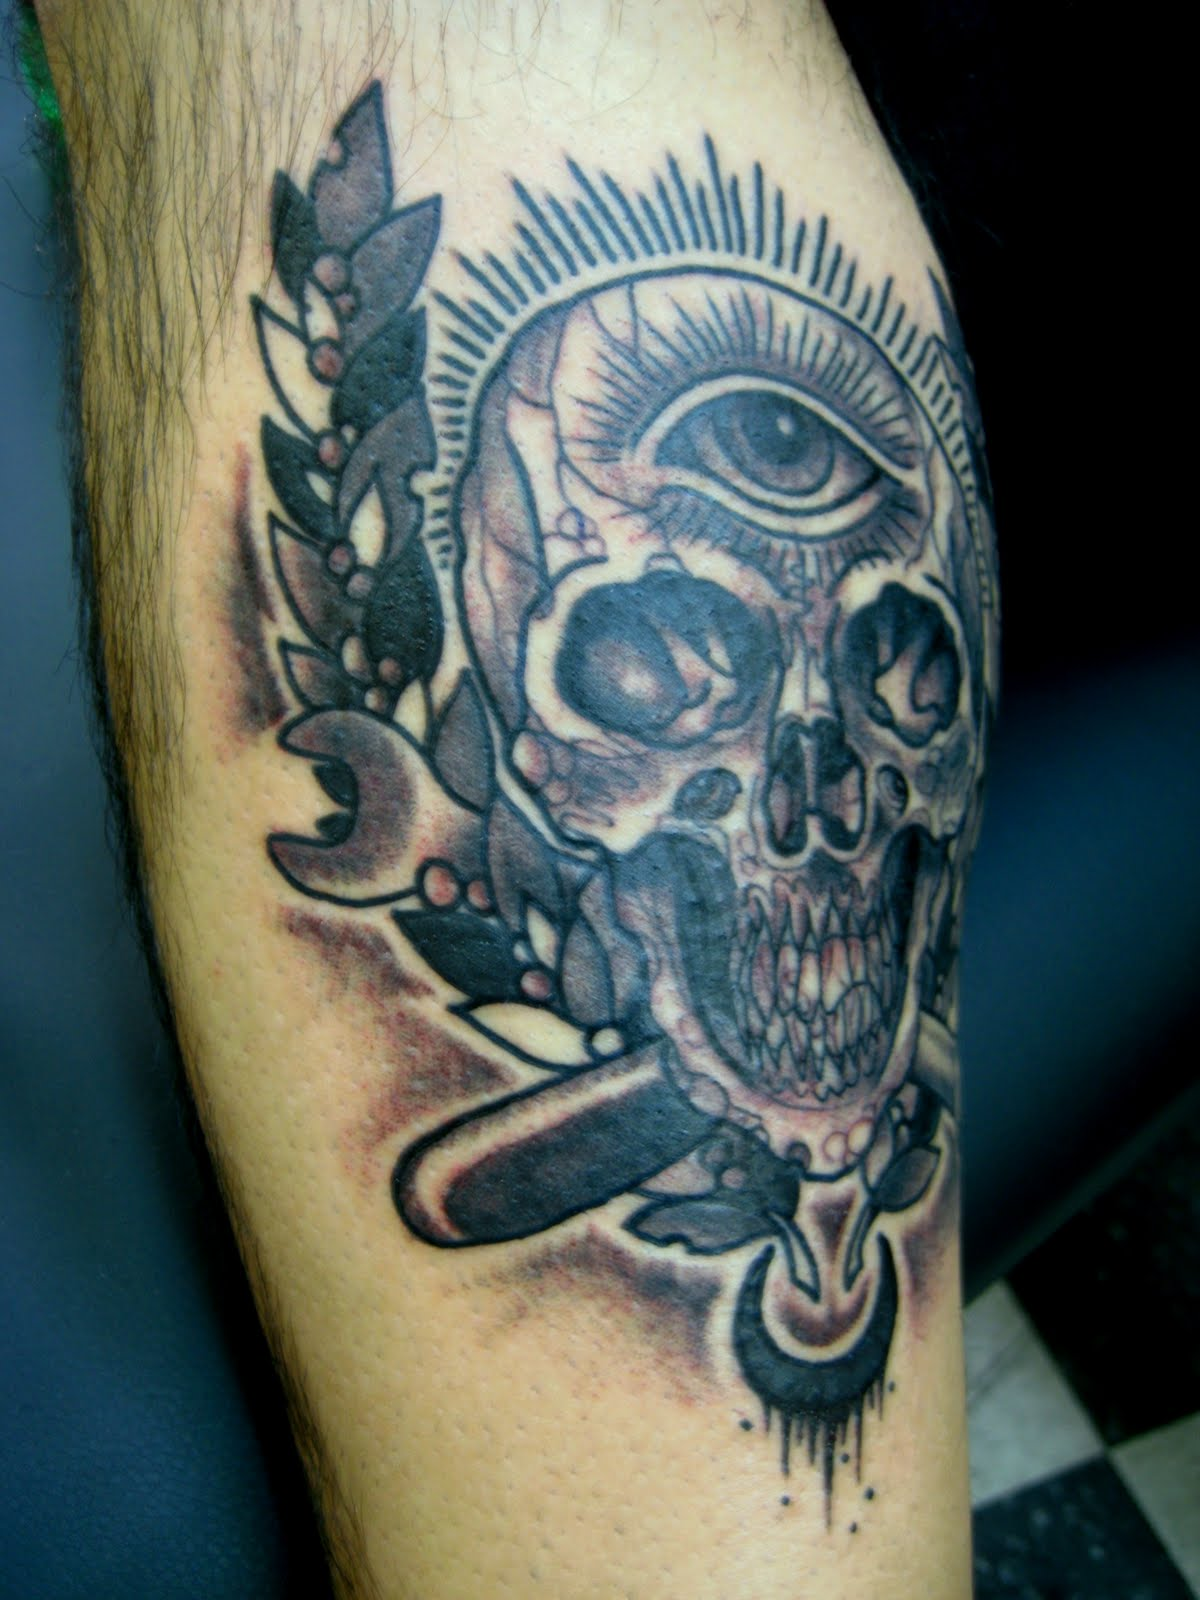 Piston and wrench tattoo images for tatouage for Piston and wrench tattoo